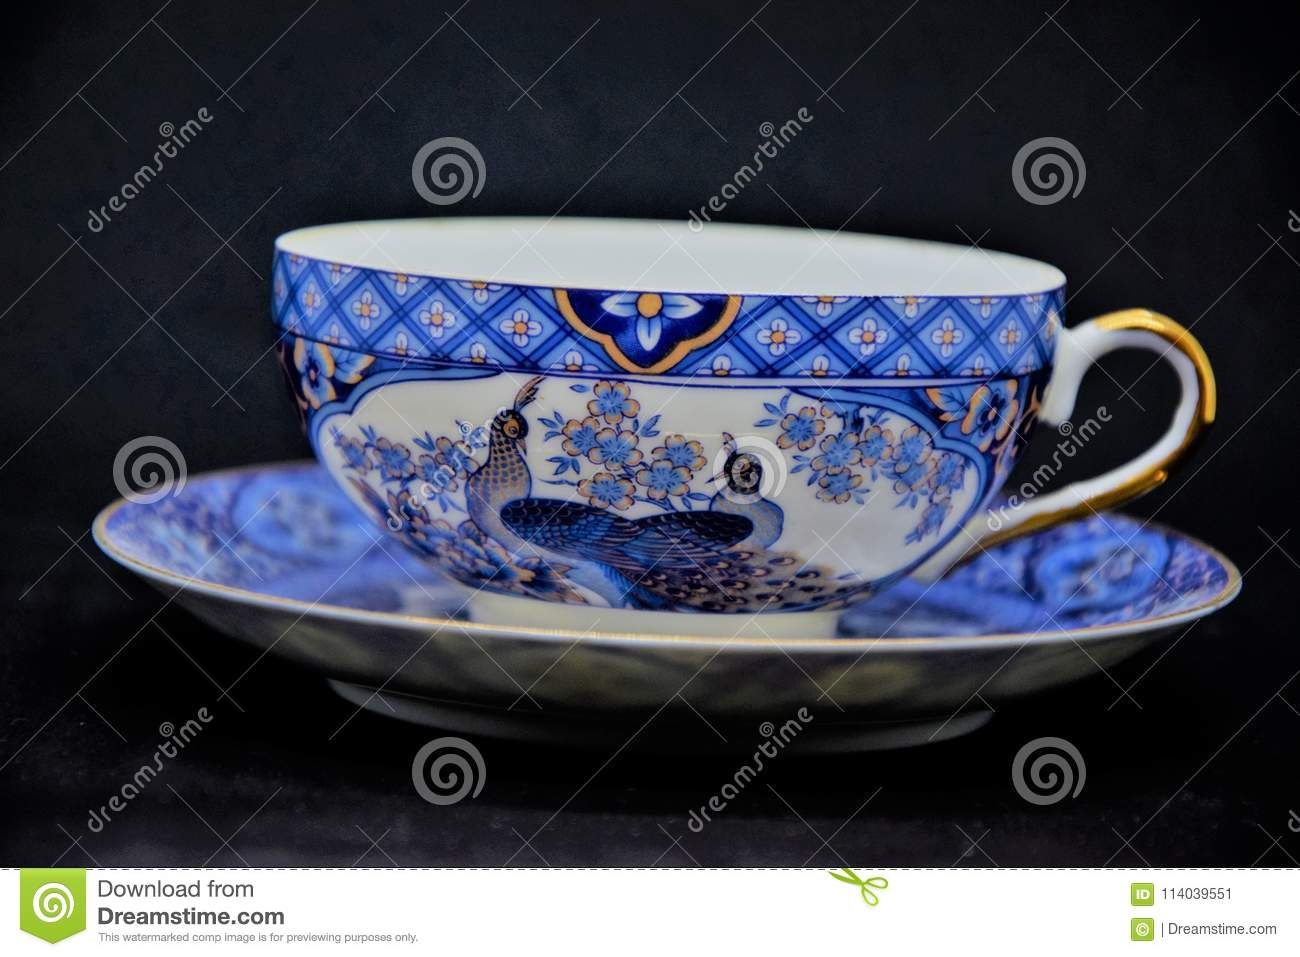 Porcelana vieja de China